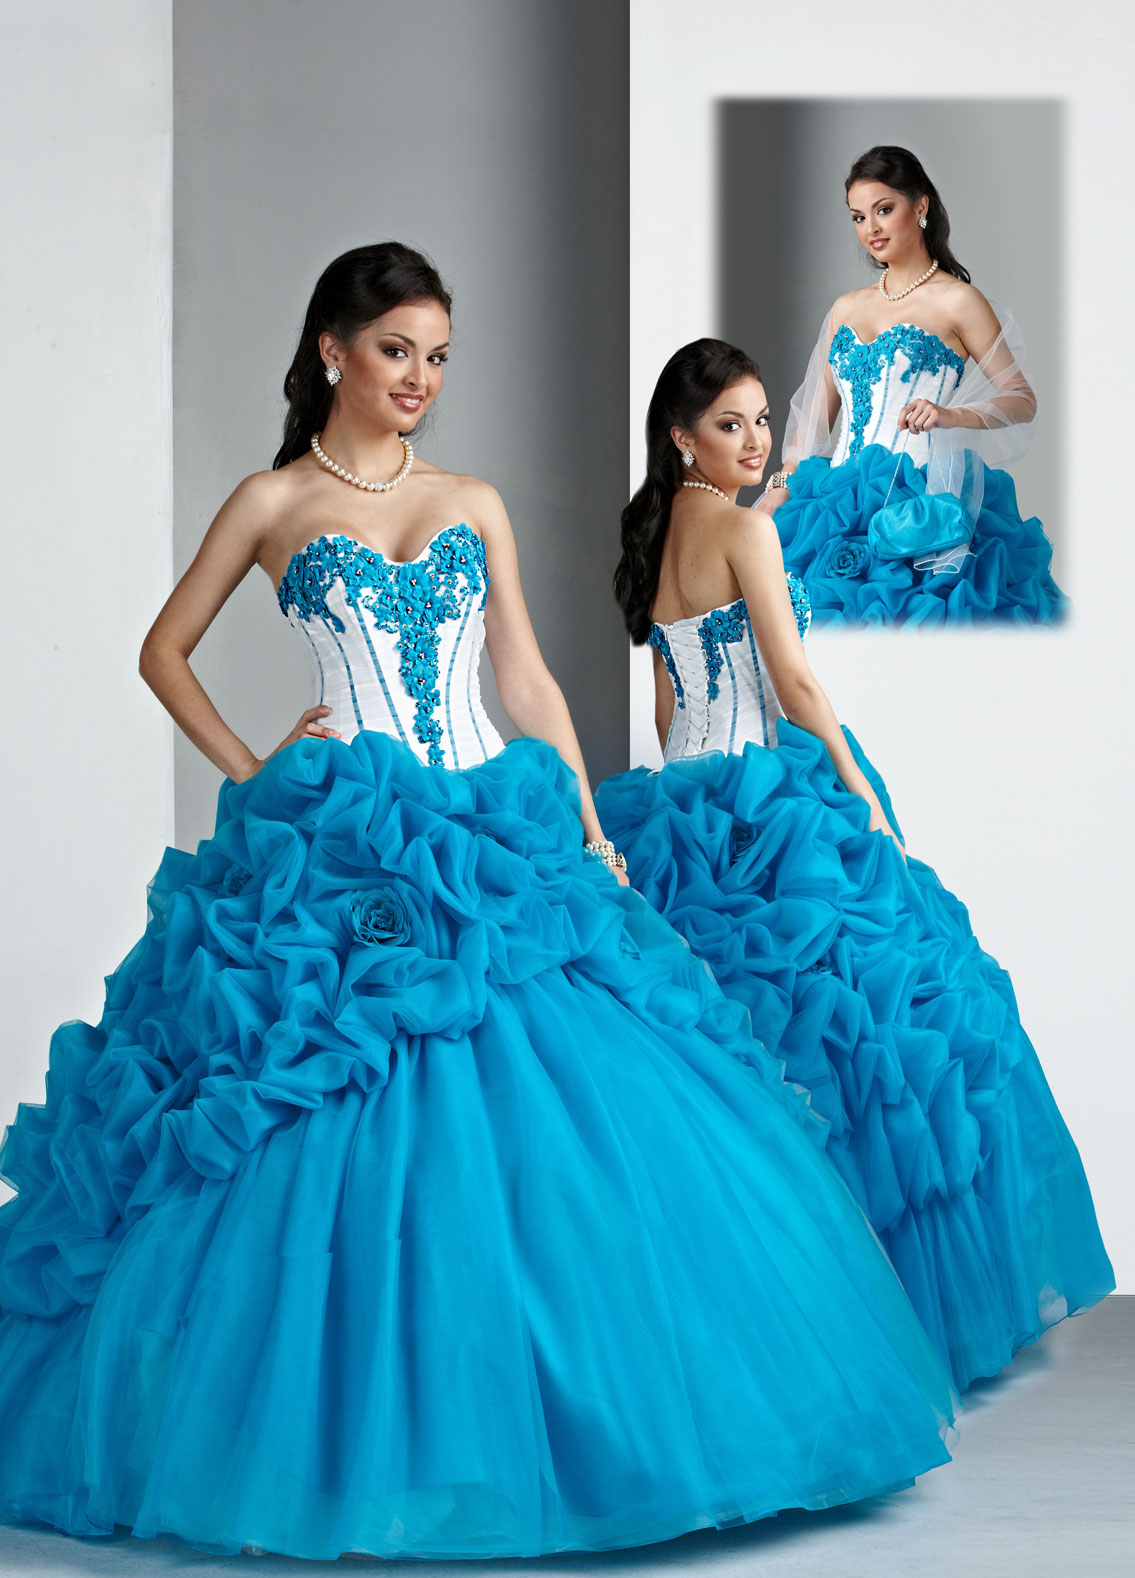 White and Turquoise Quinceanera DressesTurquoise And White Quinceanera Dresses 2014